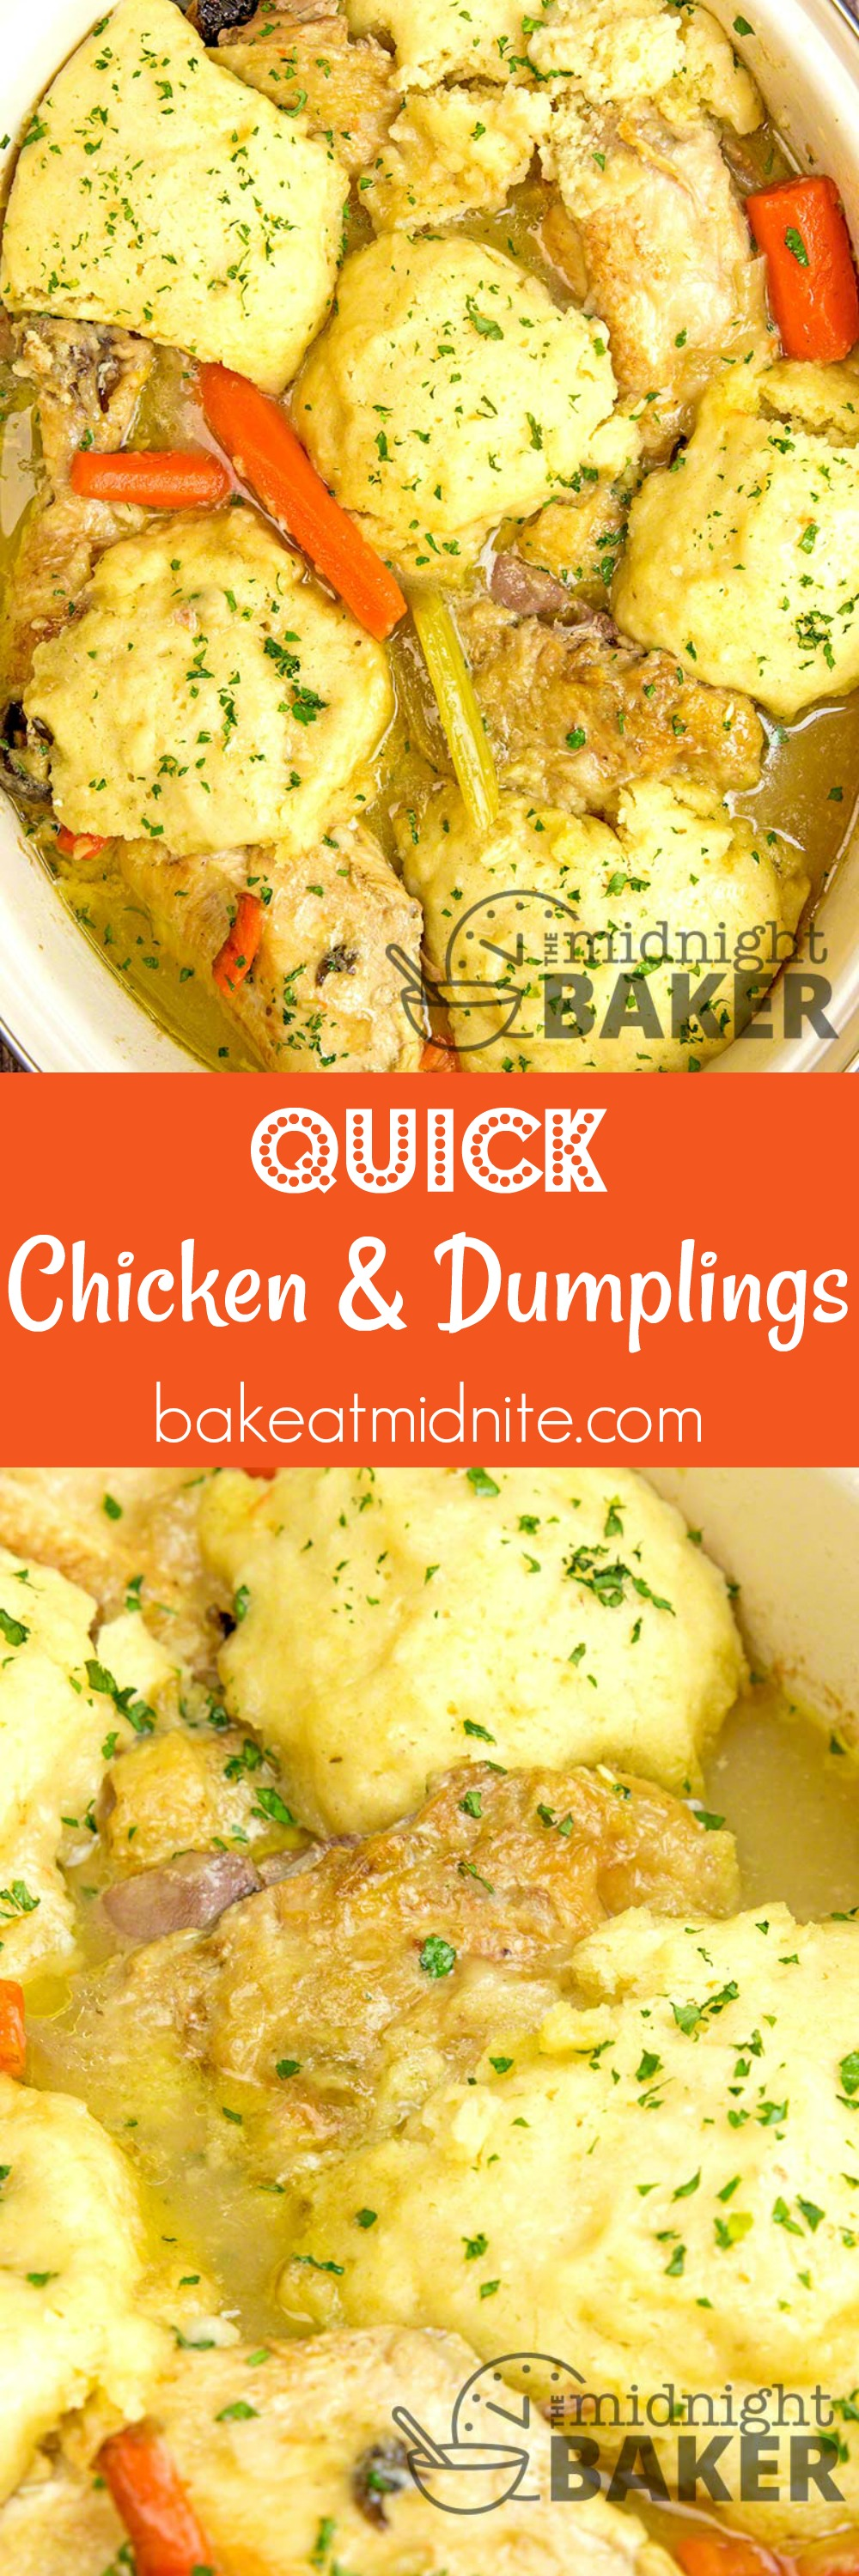 Quick and tasty chicken and dumplings